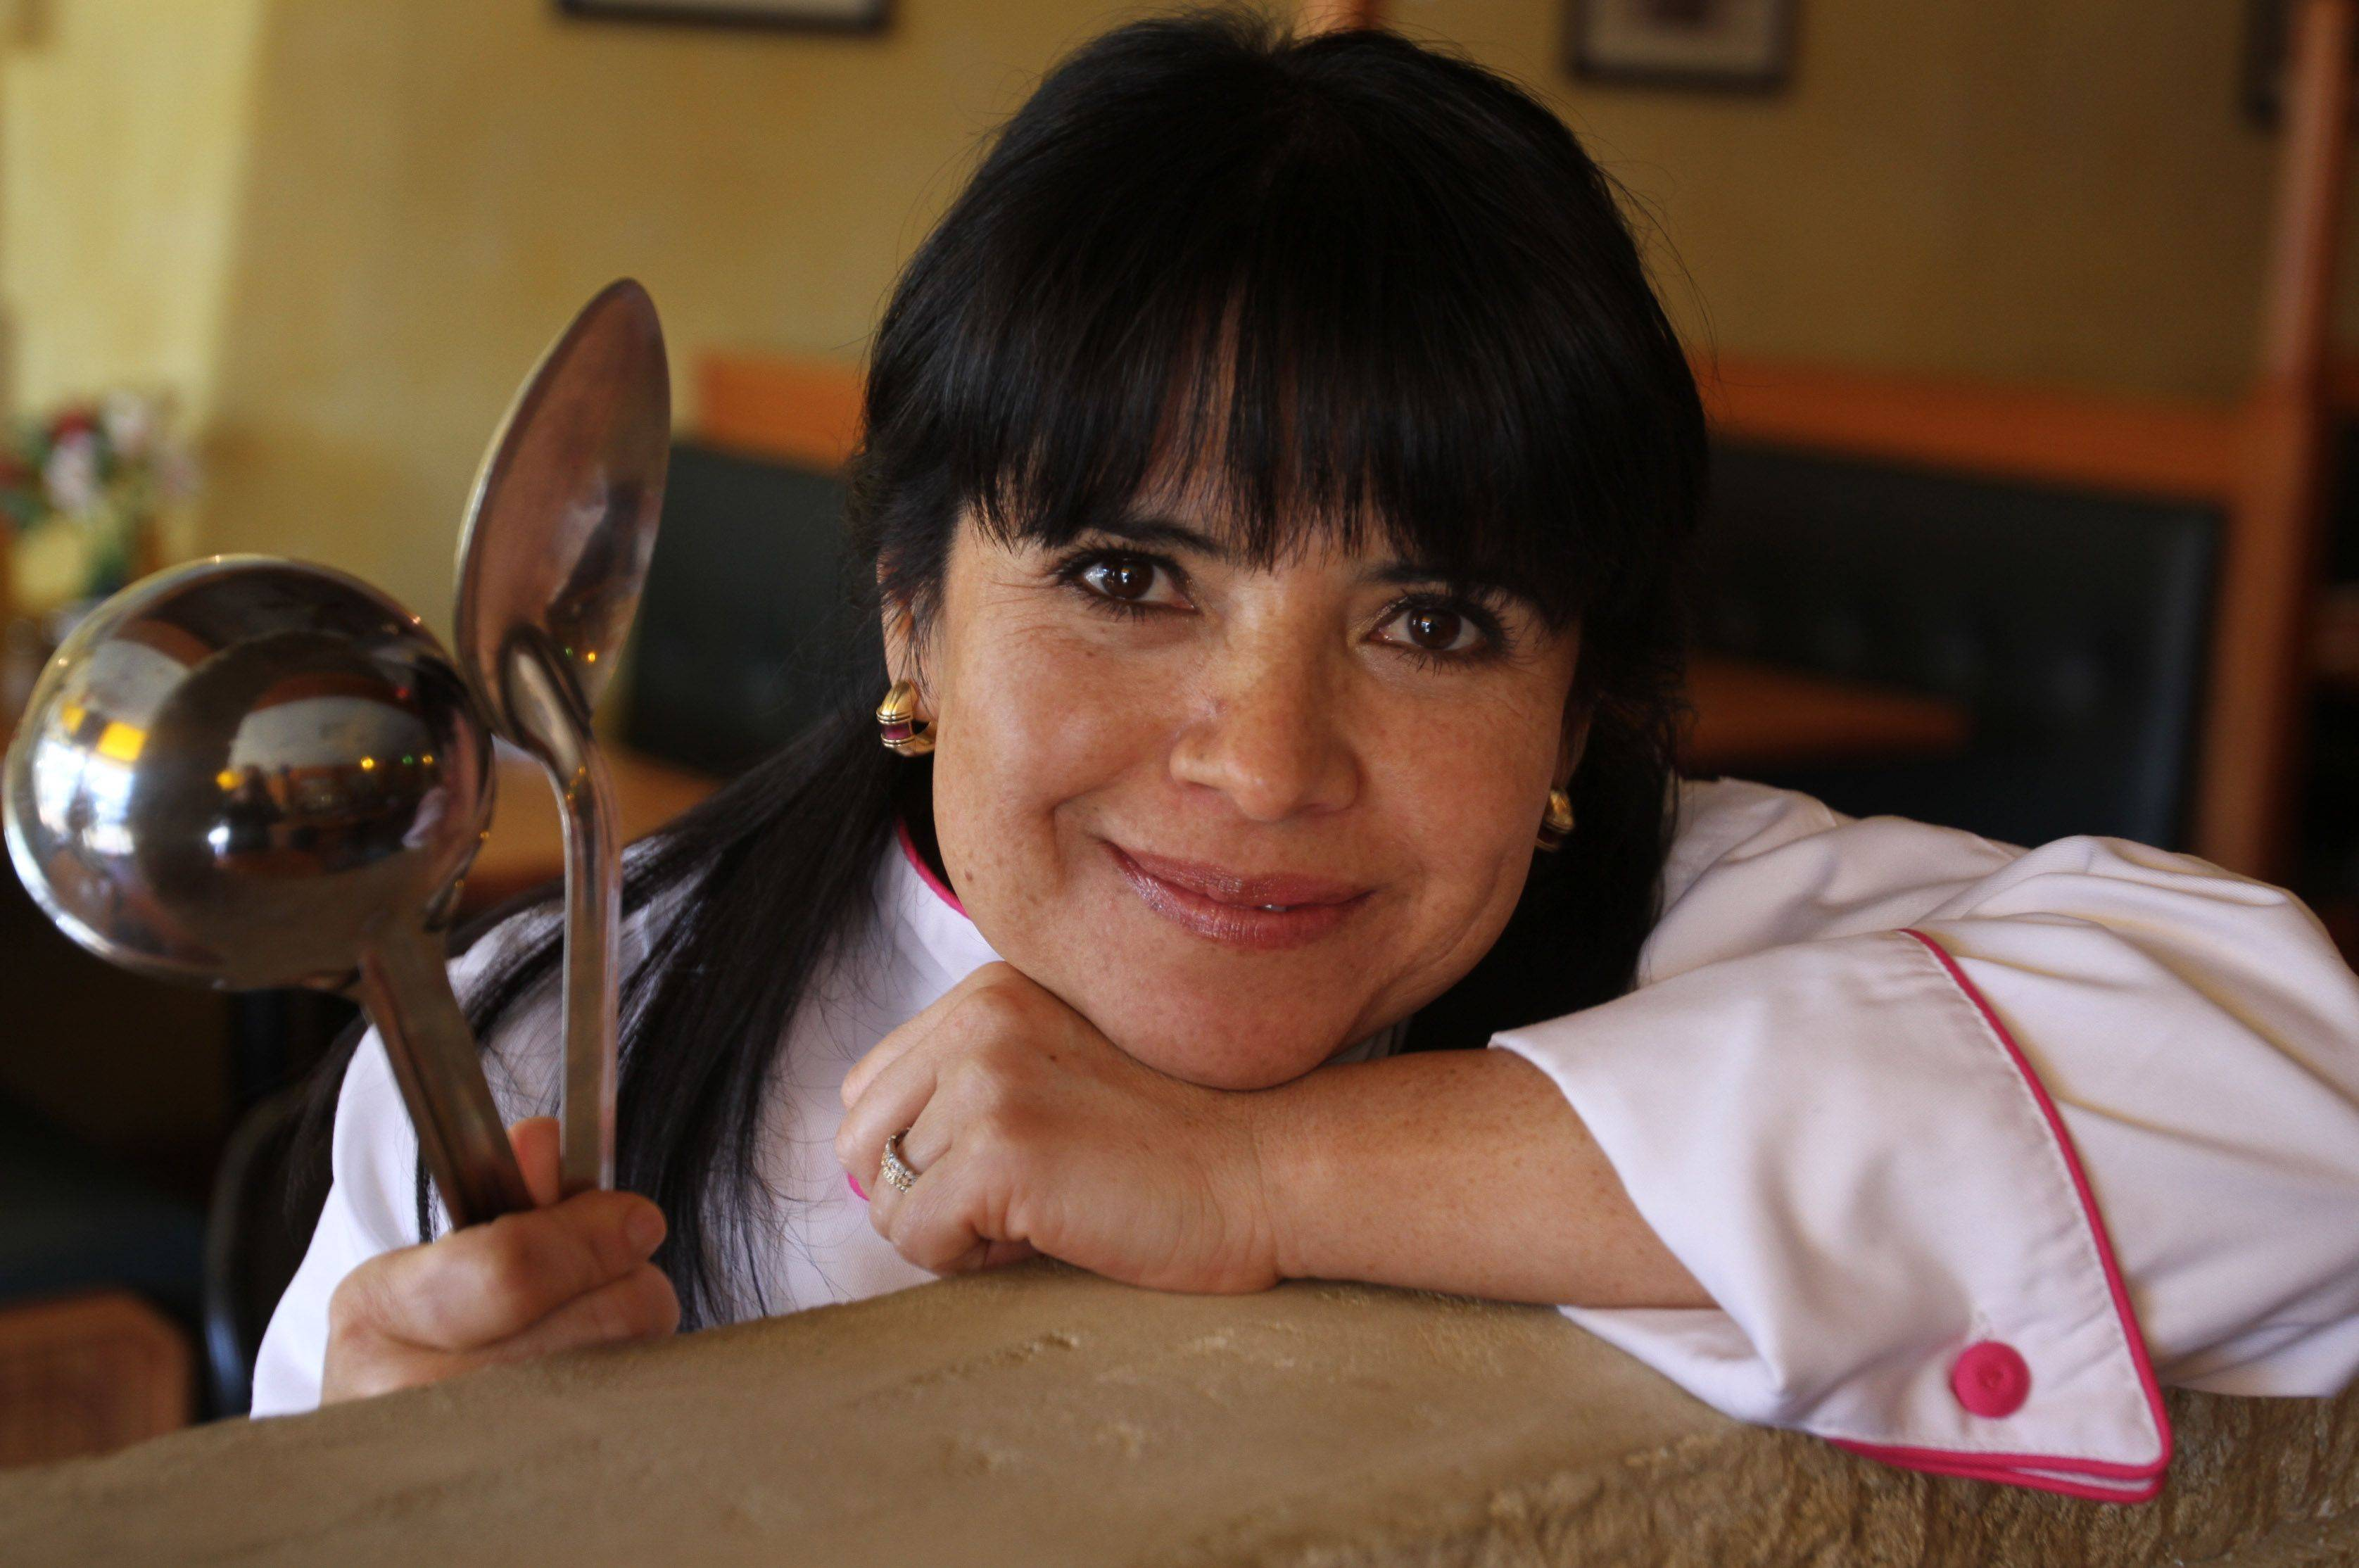 Chef Margarita Challenger shares family recipes and modern Mexican cuisine at her restaurant, Guanajuato in Glencoe.